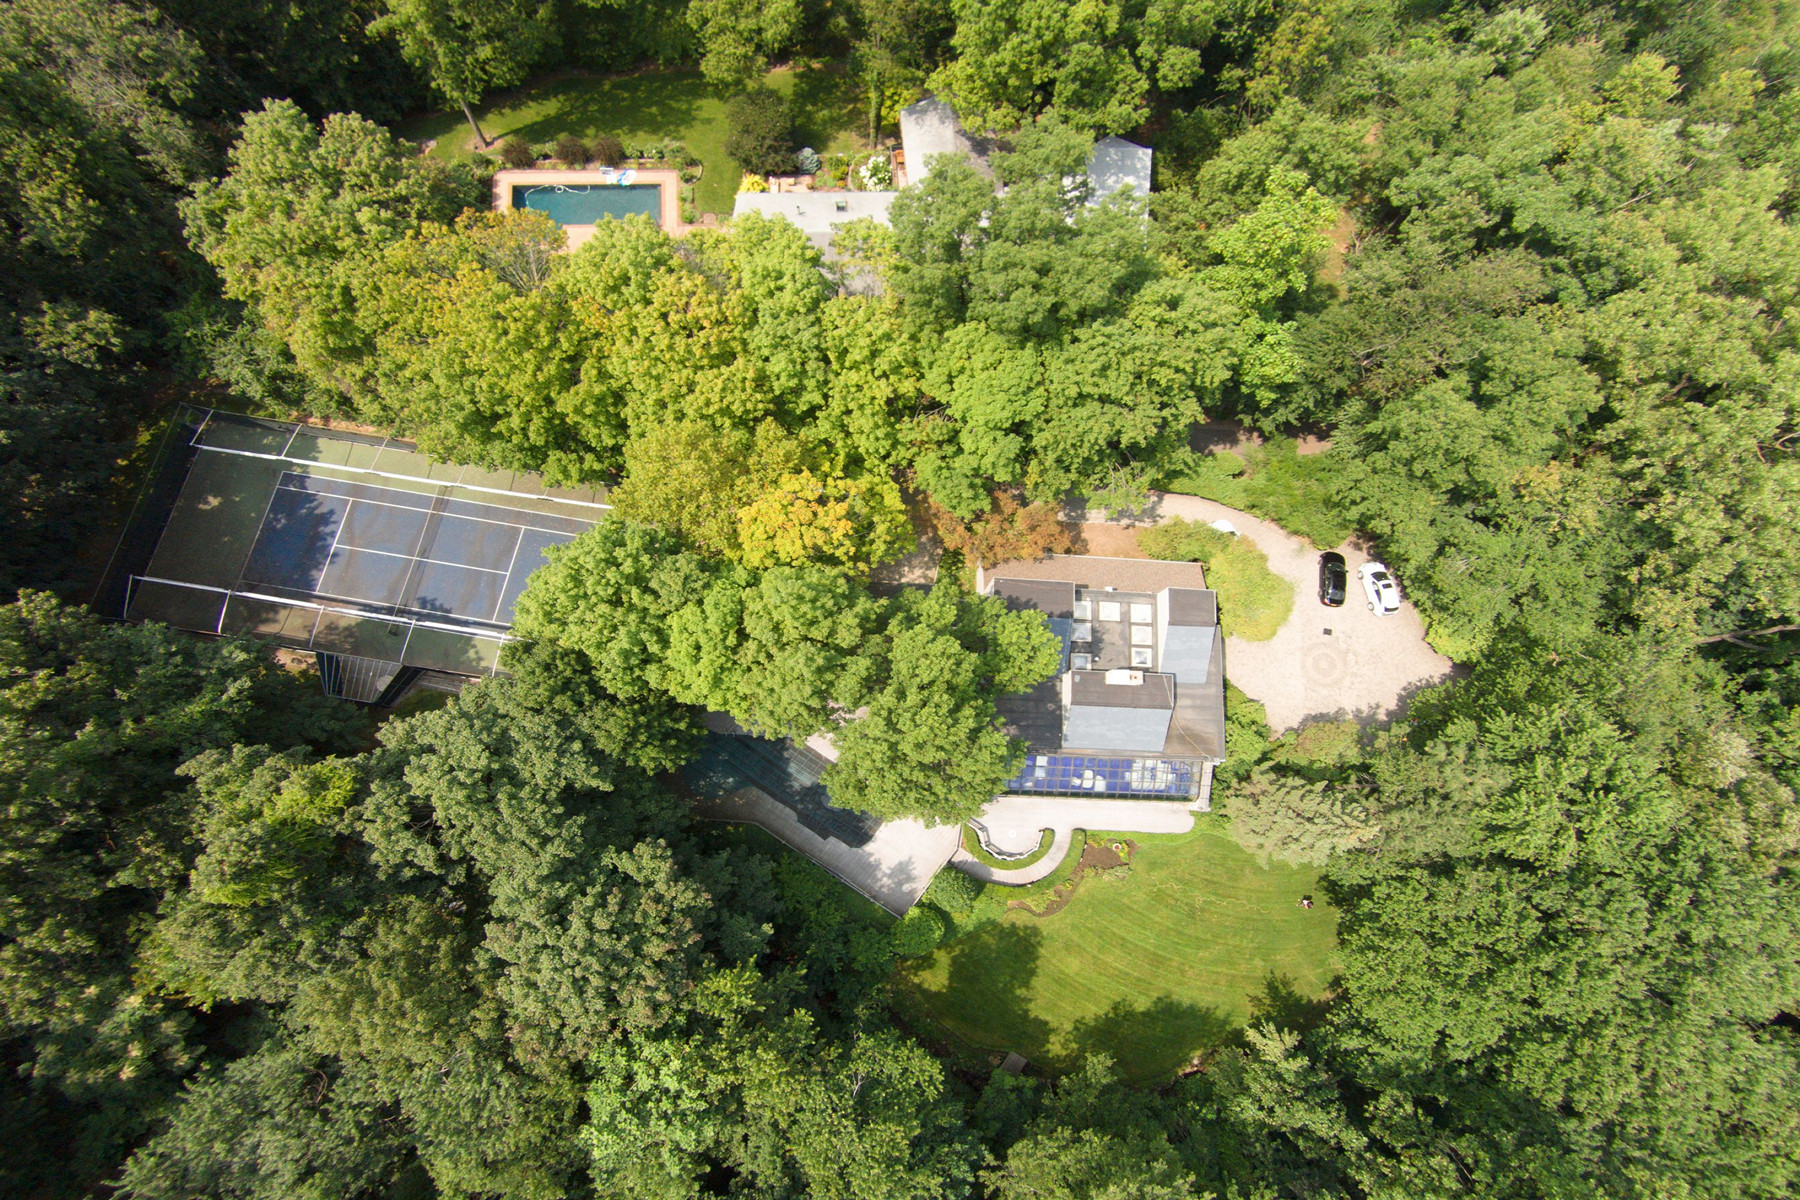 Single Family Home for Sale at Value in Land! 59 Duane Lane, Demarest, New Jersey 07627 United States